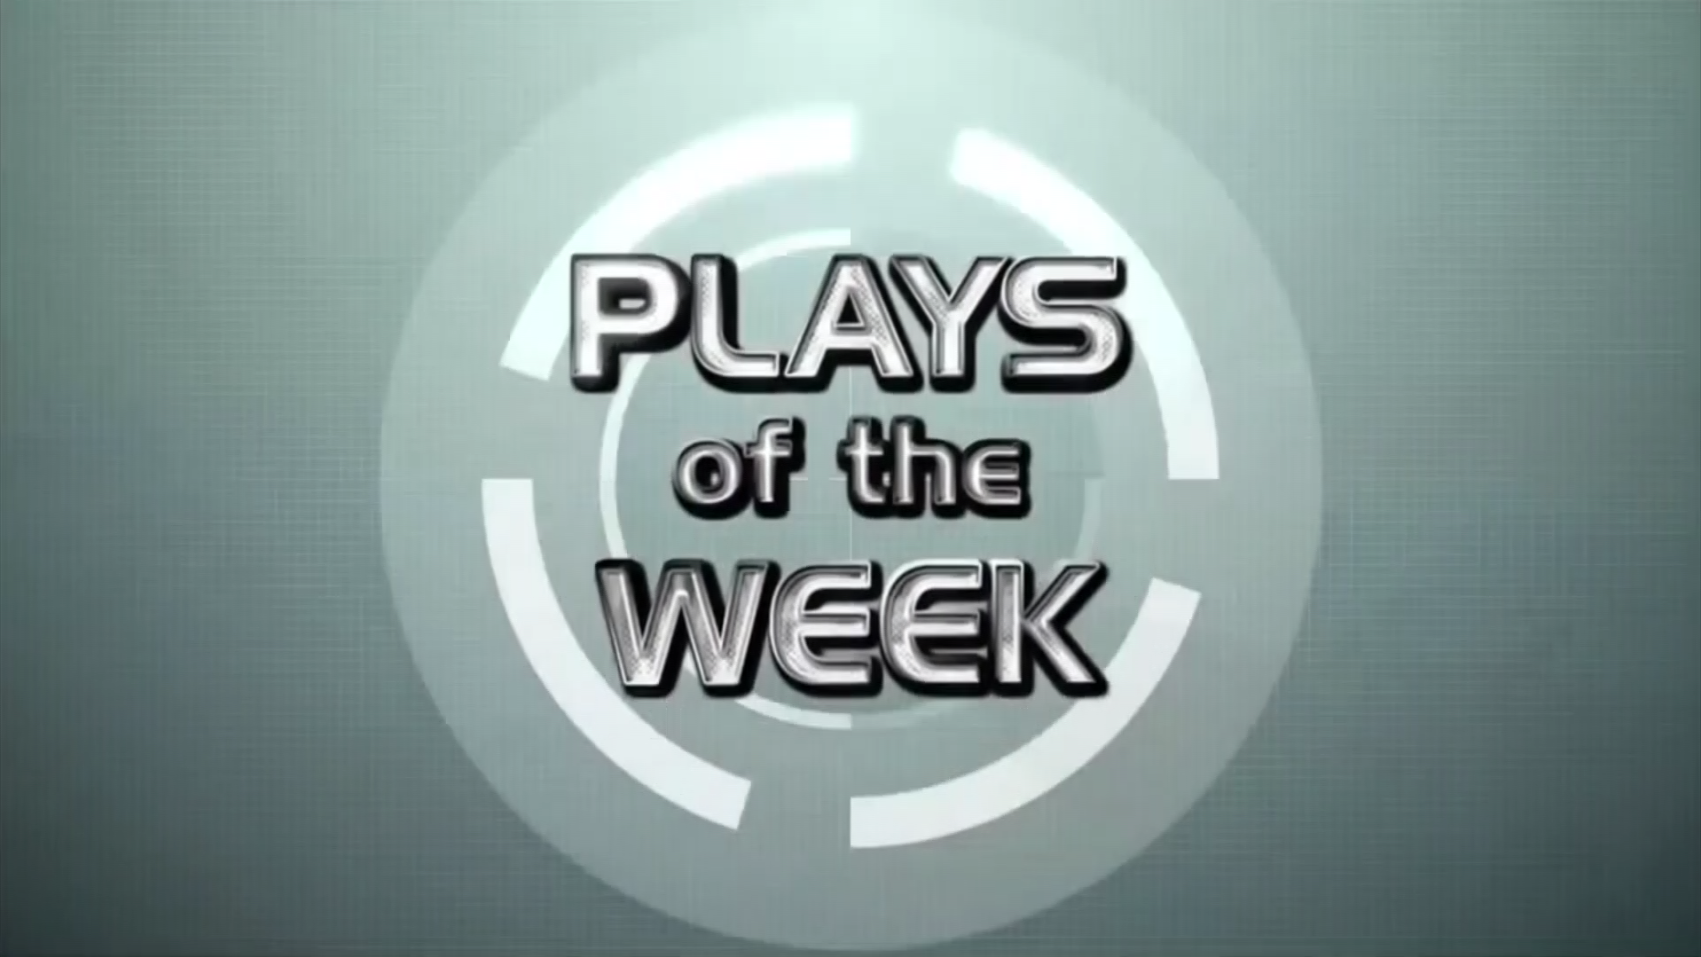 PLAYS OF THE WEEK - October 13